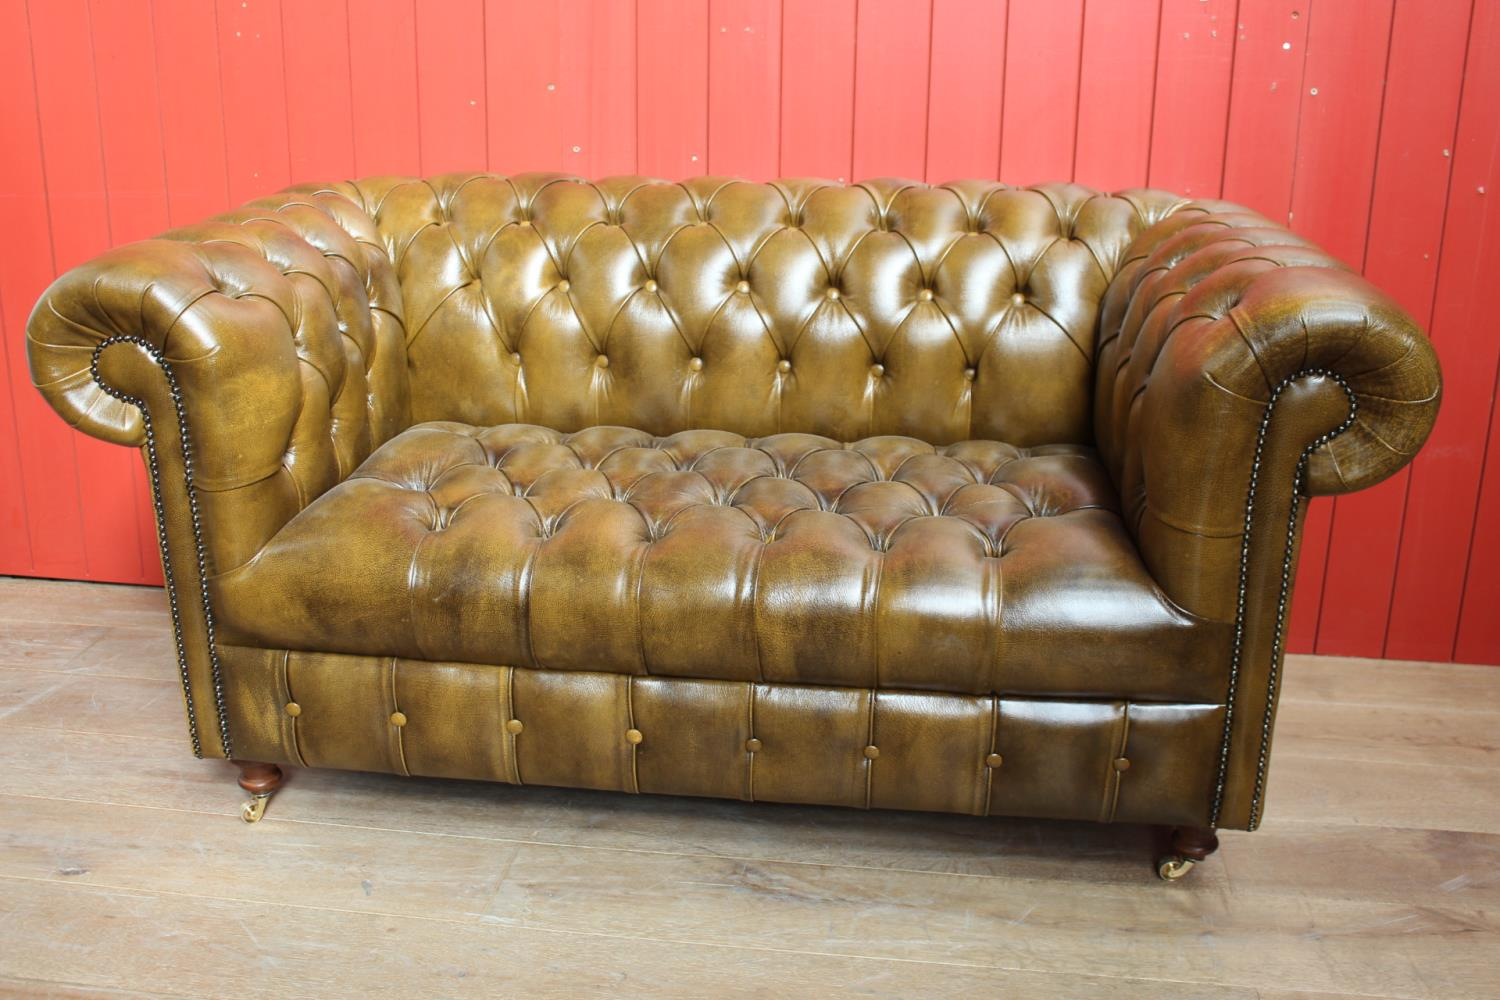 Deep buttoned leather upholstered settee.